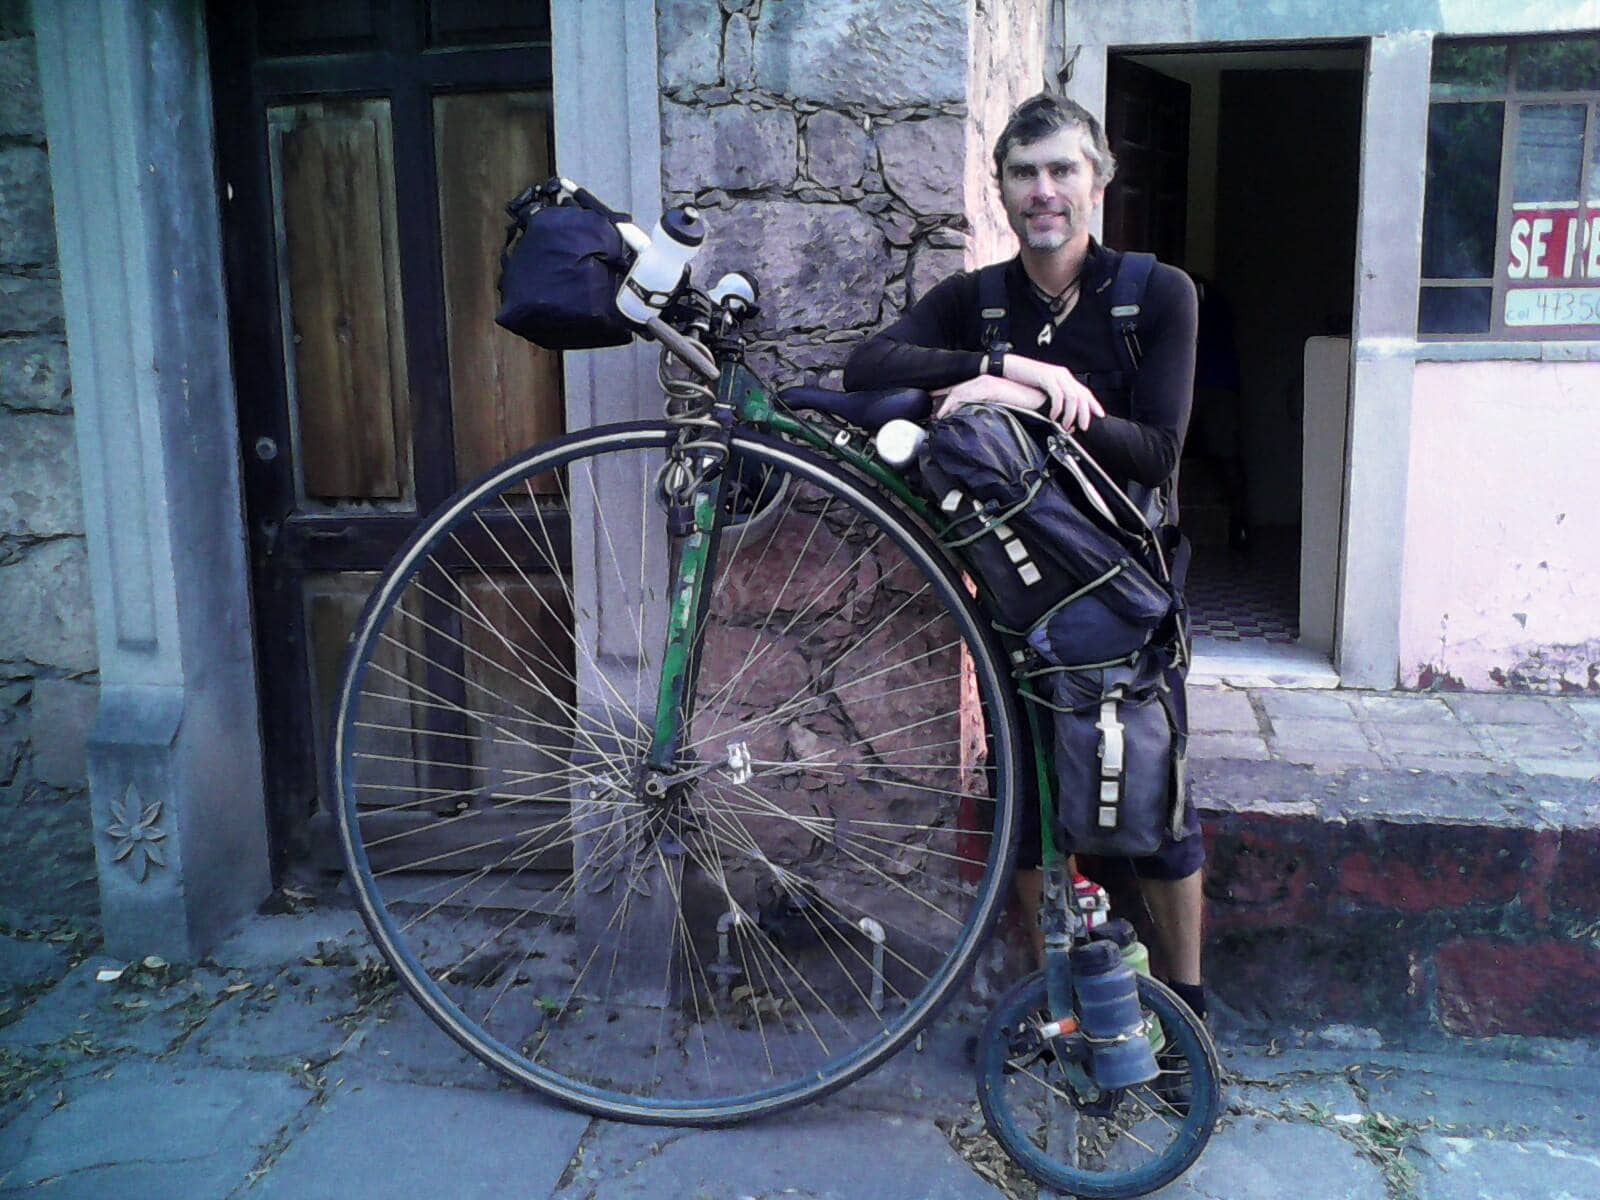 John from penny-farthing